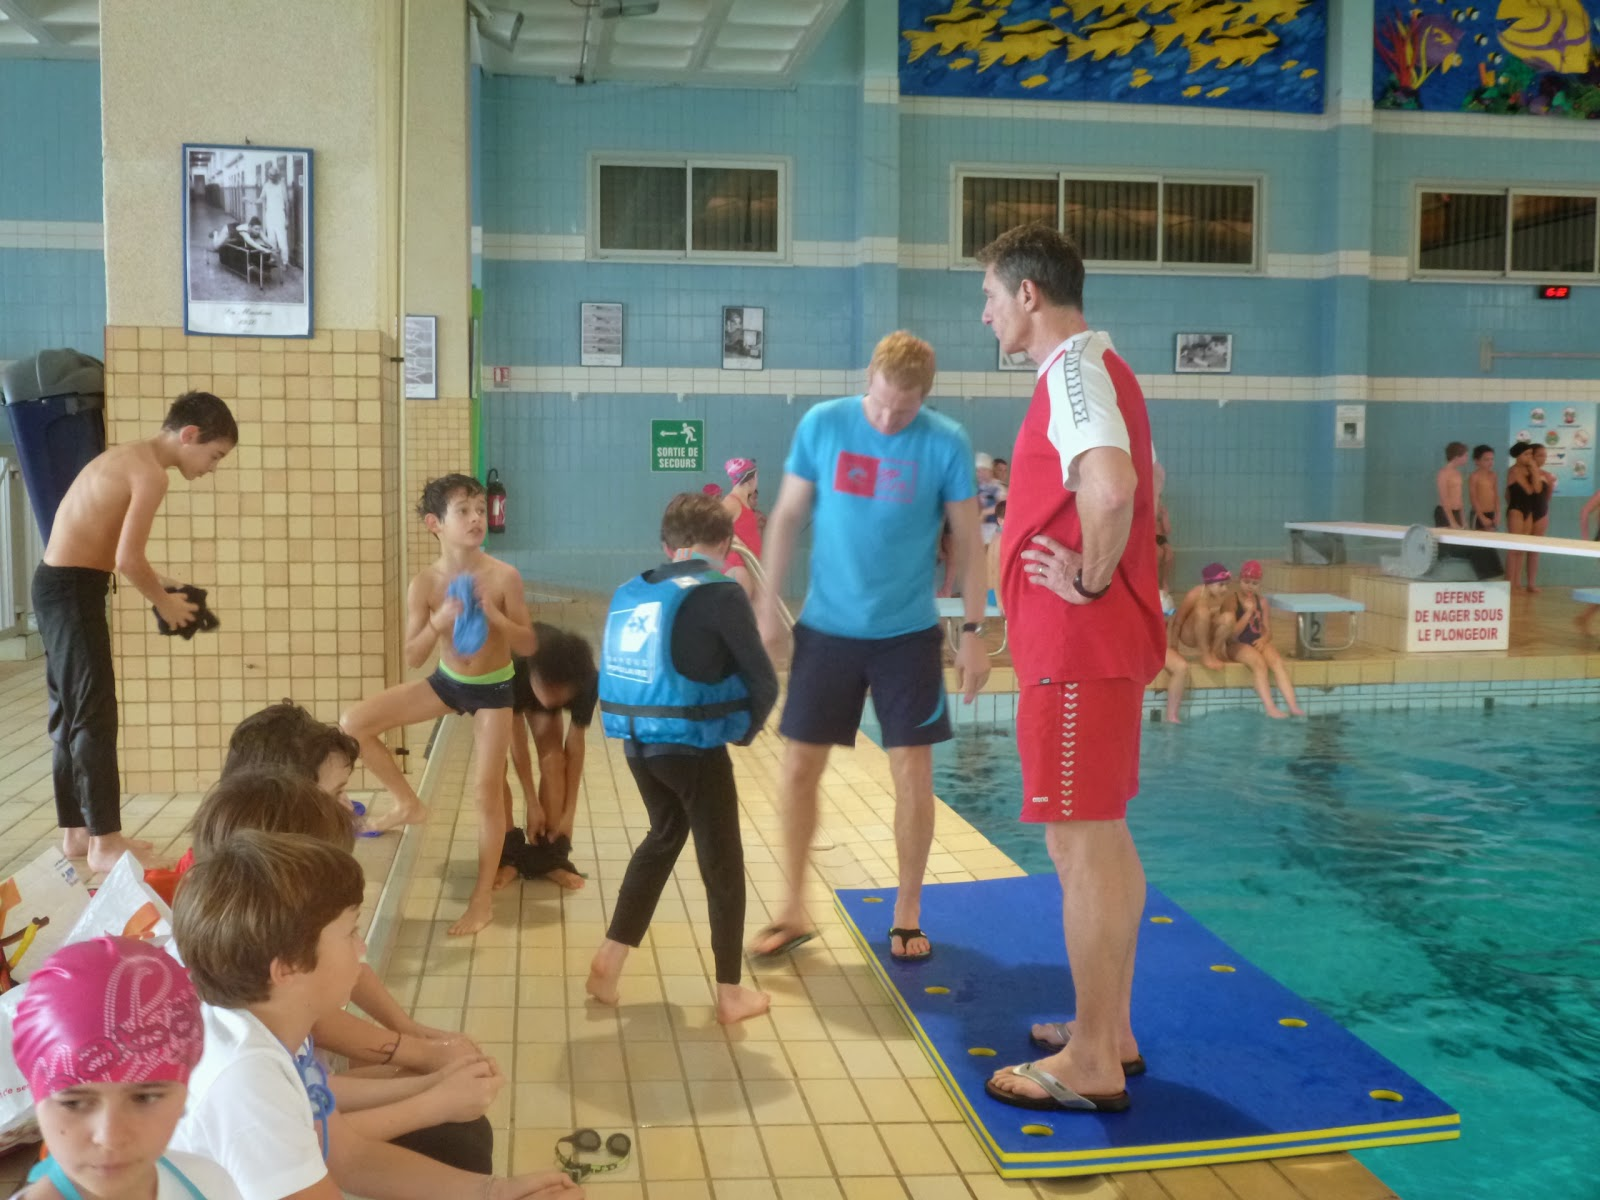 Ecole sainte anne st briac sur mer tests la piscine for Piscine dinard